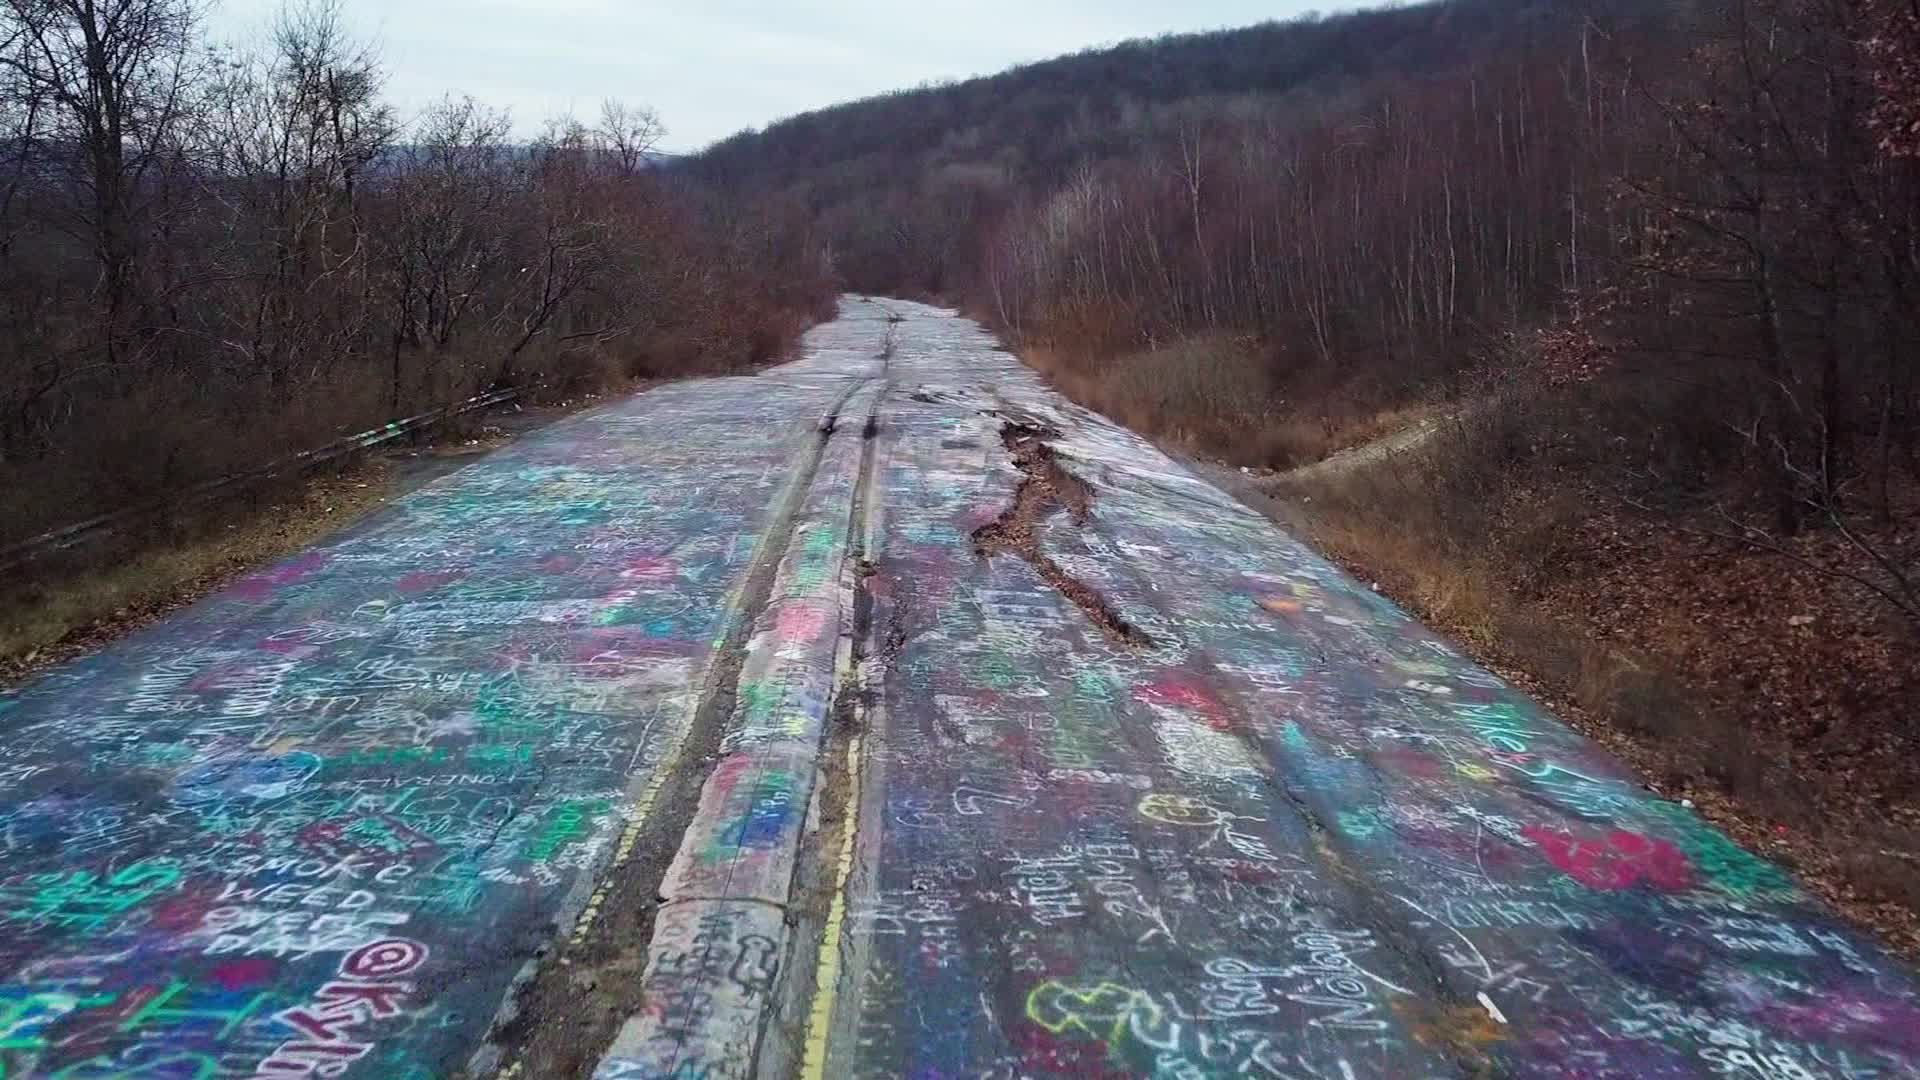 Picture of road covered in colorful graffiti